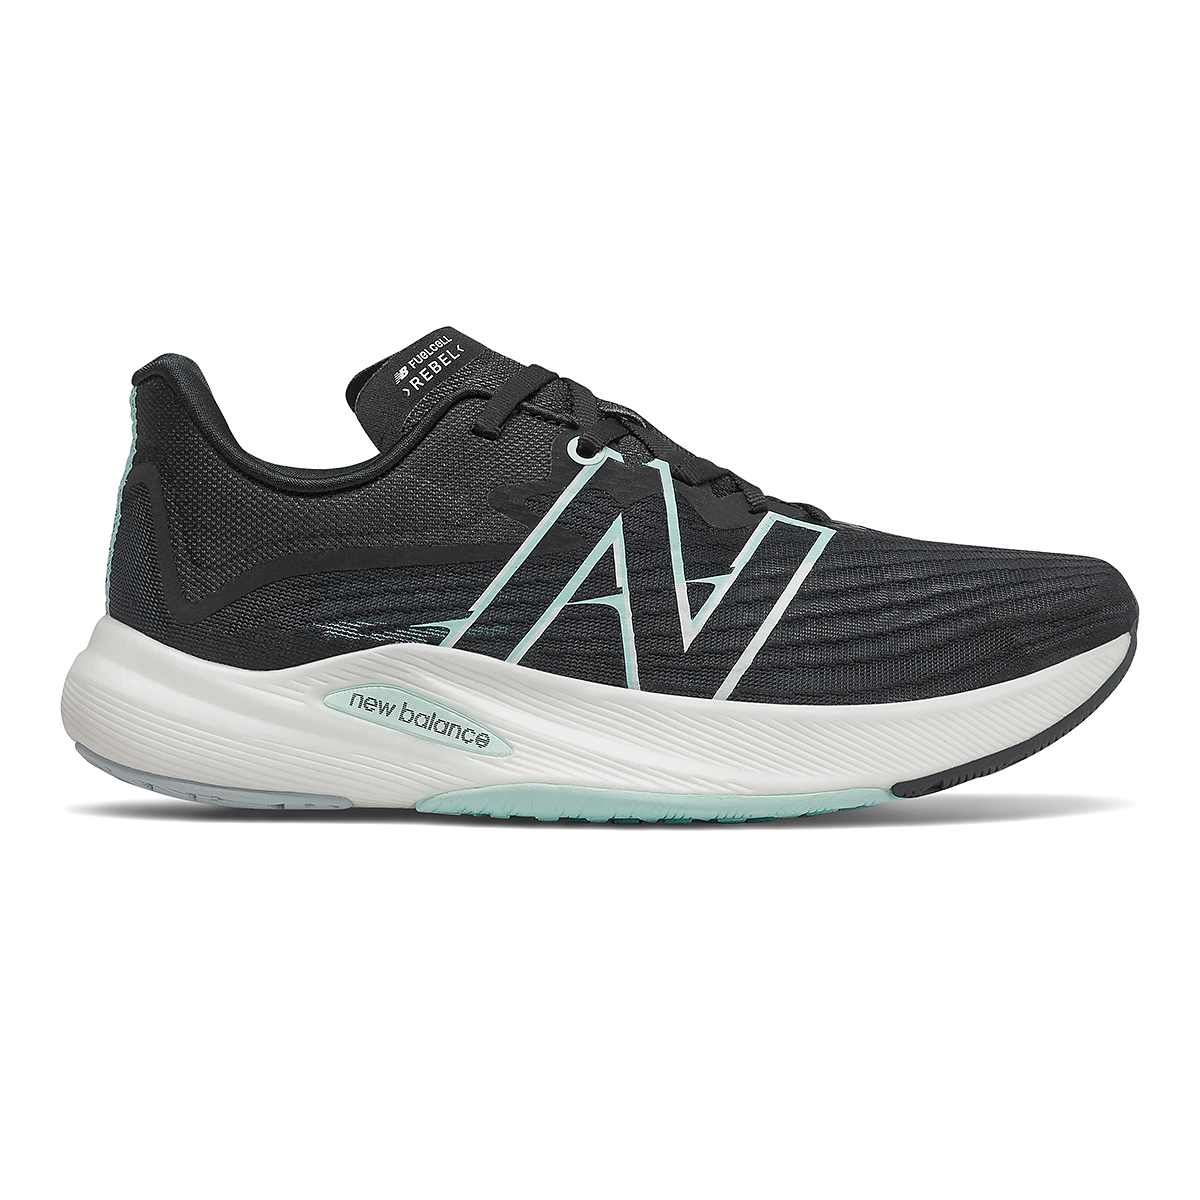 Women's New Balance Fuelcell Rebel V2 Running Shoe - Color: Black/White Mint/Citrus Punch - Size: 5 - Width: Regular, Black/White Mint/Citrus Punch, large, image 1